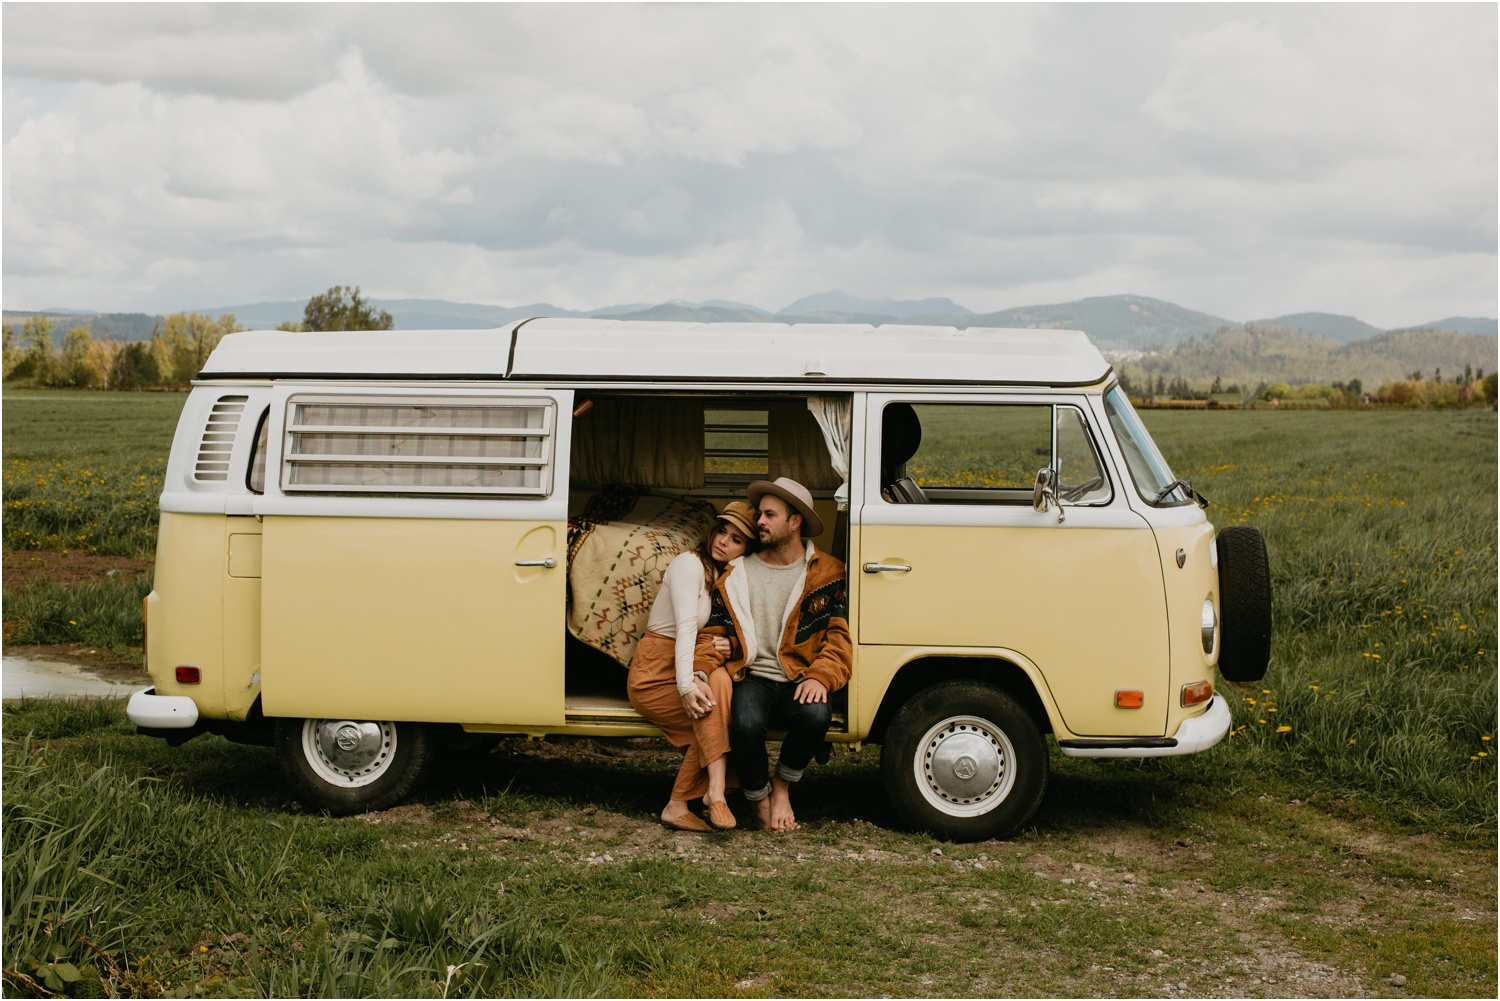 Courtney Jess Photography,East Kootenay Photographer,Fernie Photographer,Fernie Wedding Photographer,Kimberley BC Photographer,Kimberley BC Weddings,Vanagon couple photos,Volkswagon Van,boho couples.,vanagon,